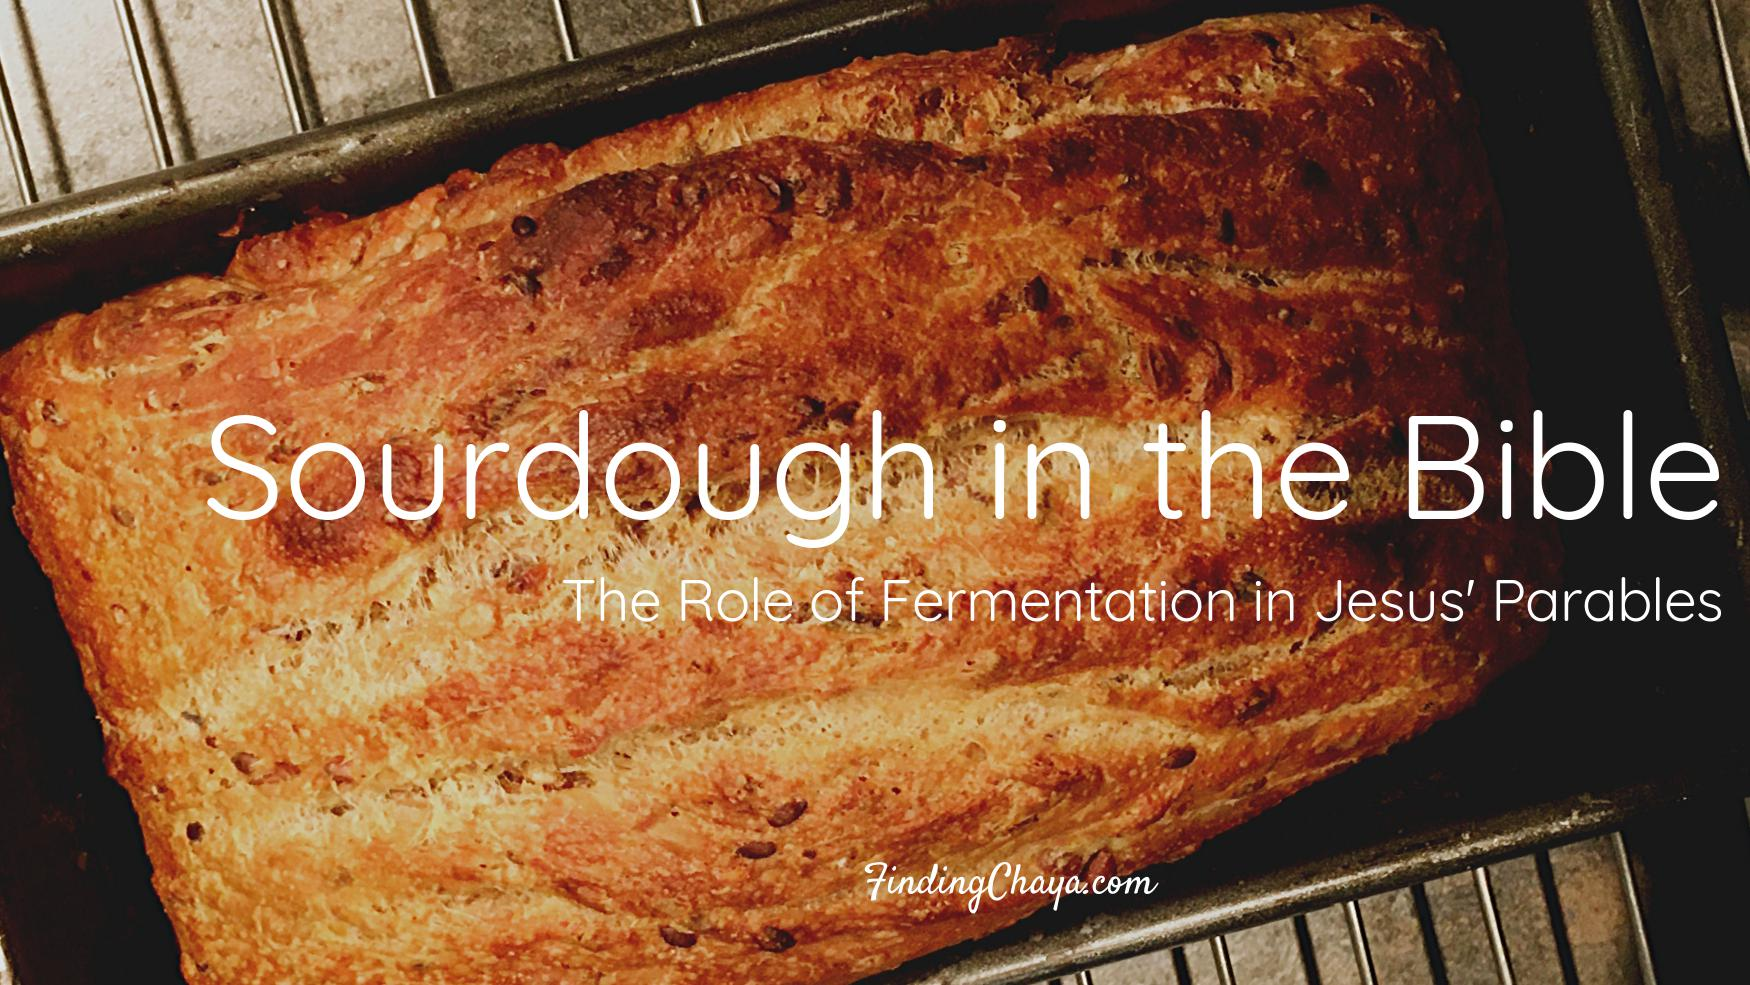 Sourdough in the Bible || The Role of Fermentation in Jesus' Parables